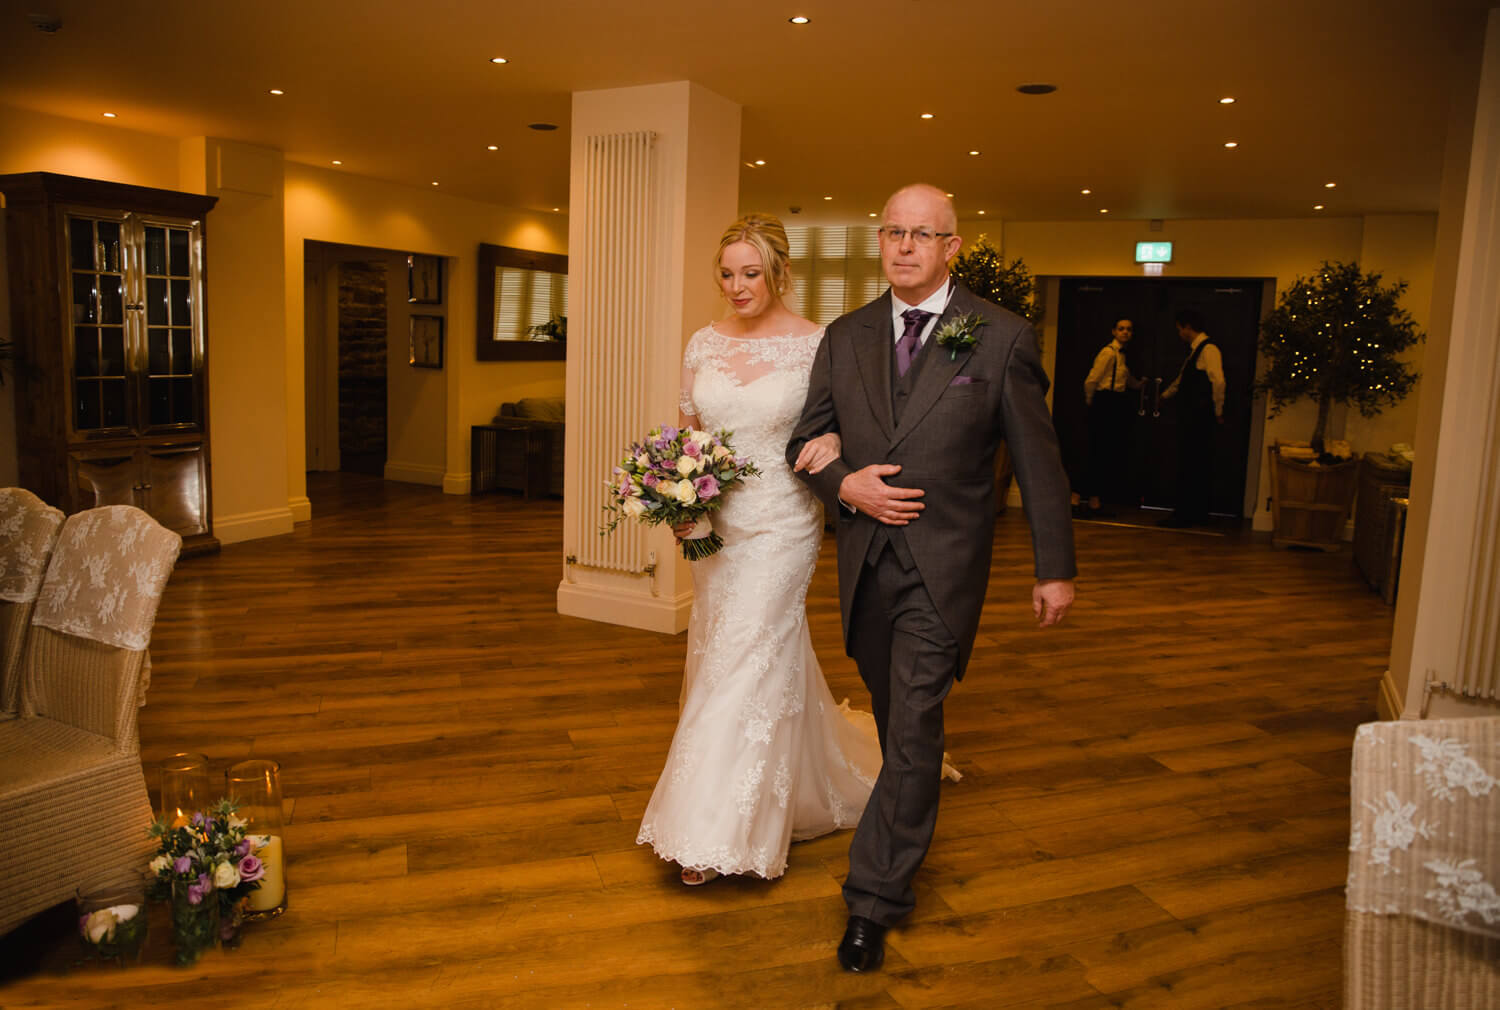 bride linking arms with father for wedding ceremony entrance processional